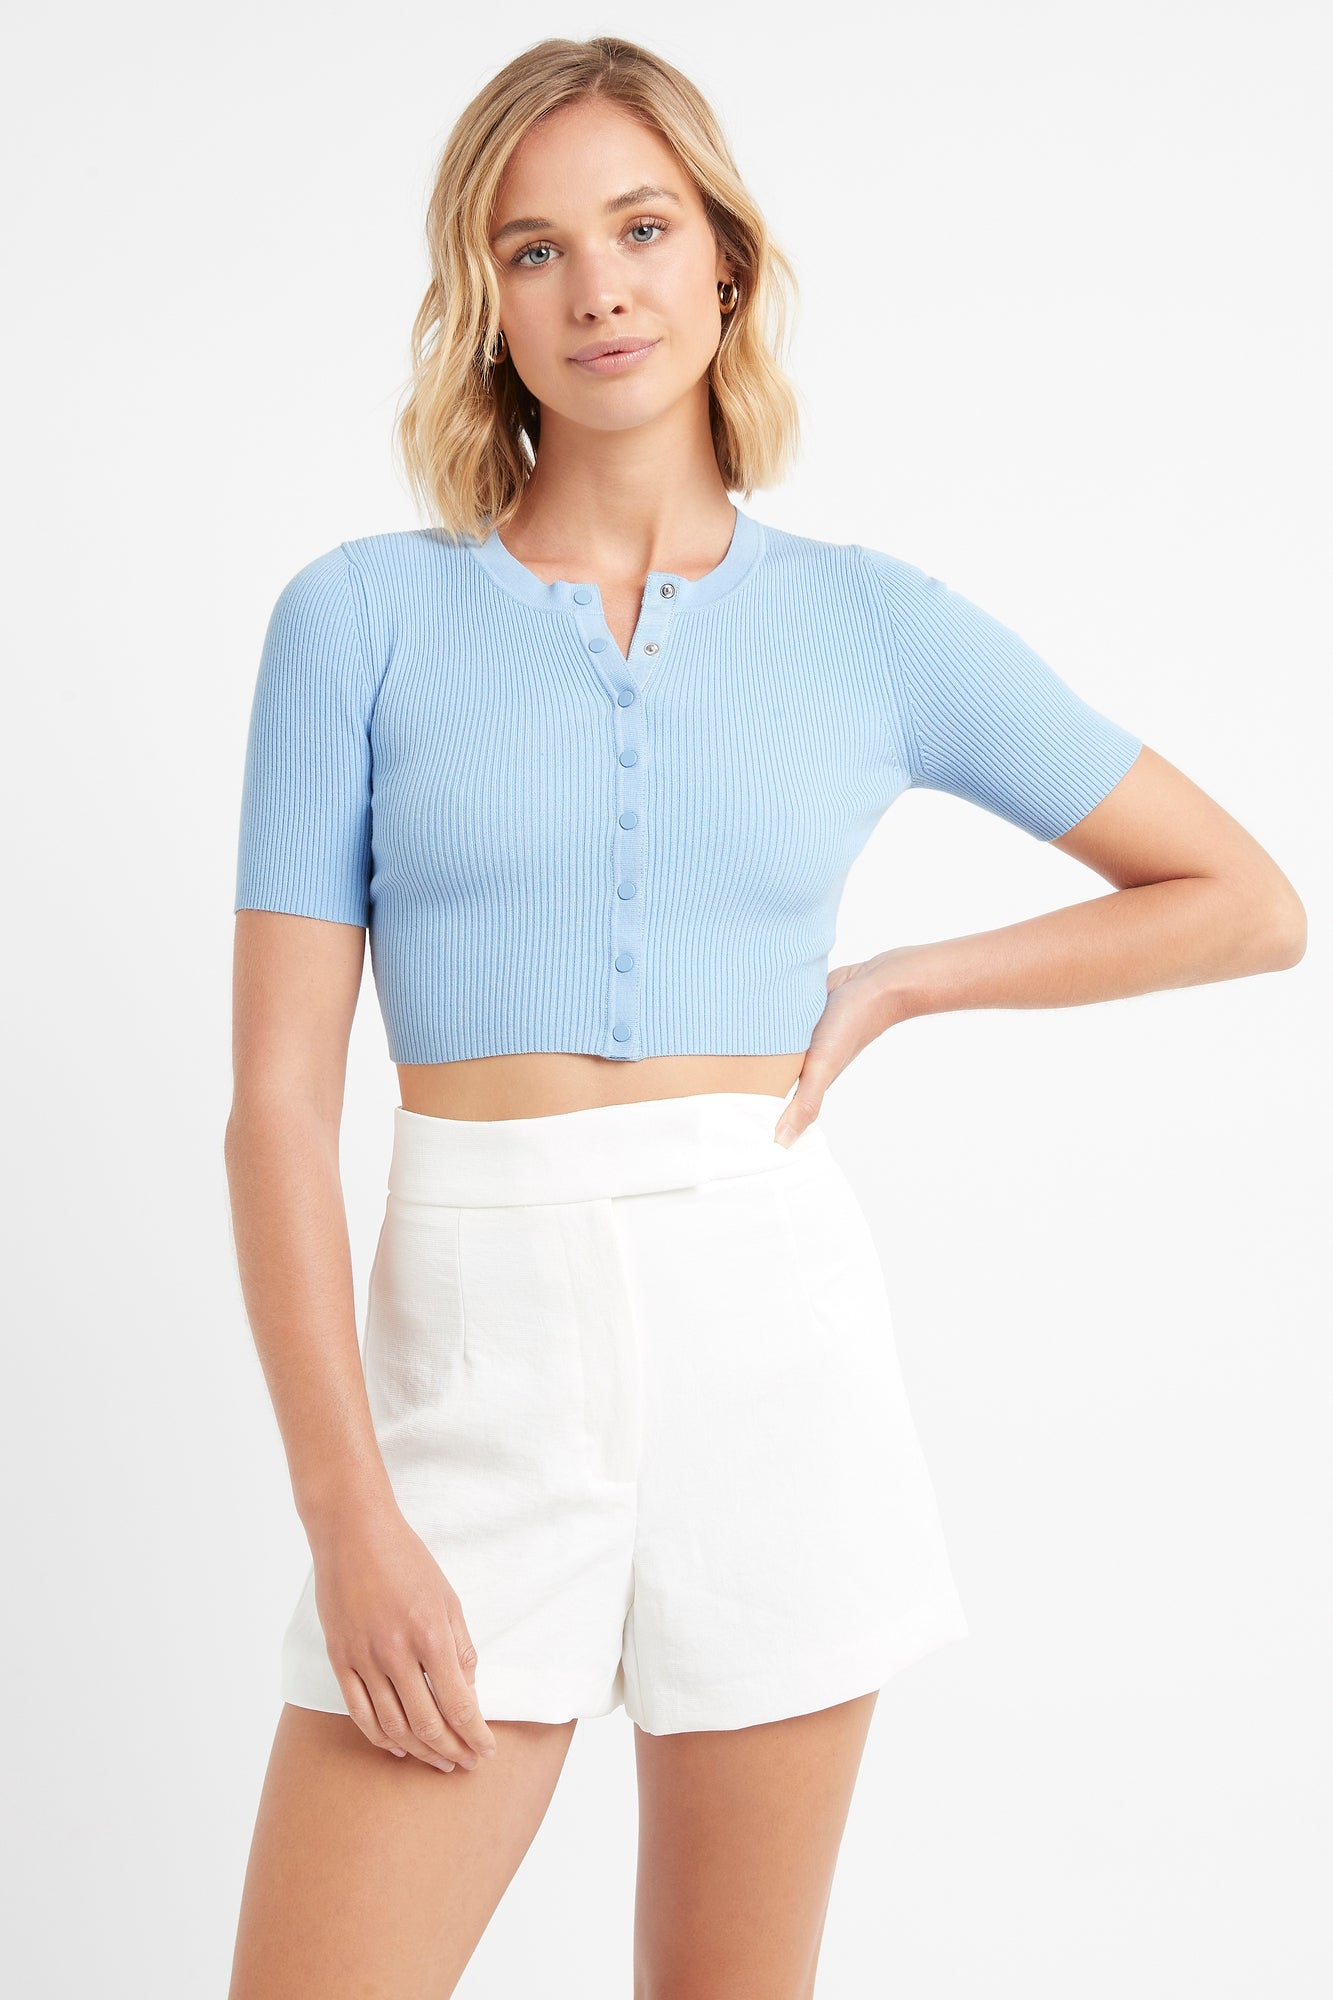 Lola Cropped Short Sleeve Cardigan